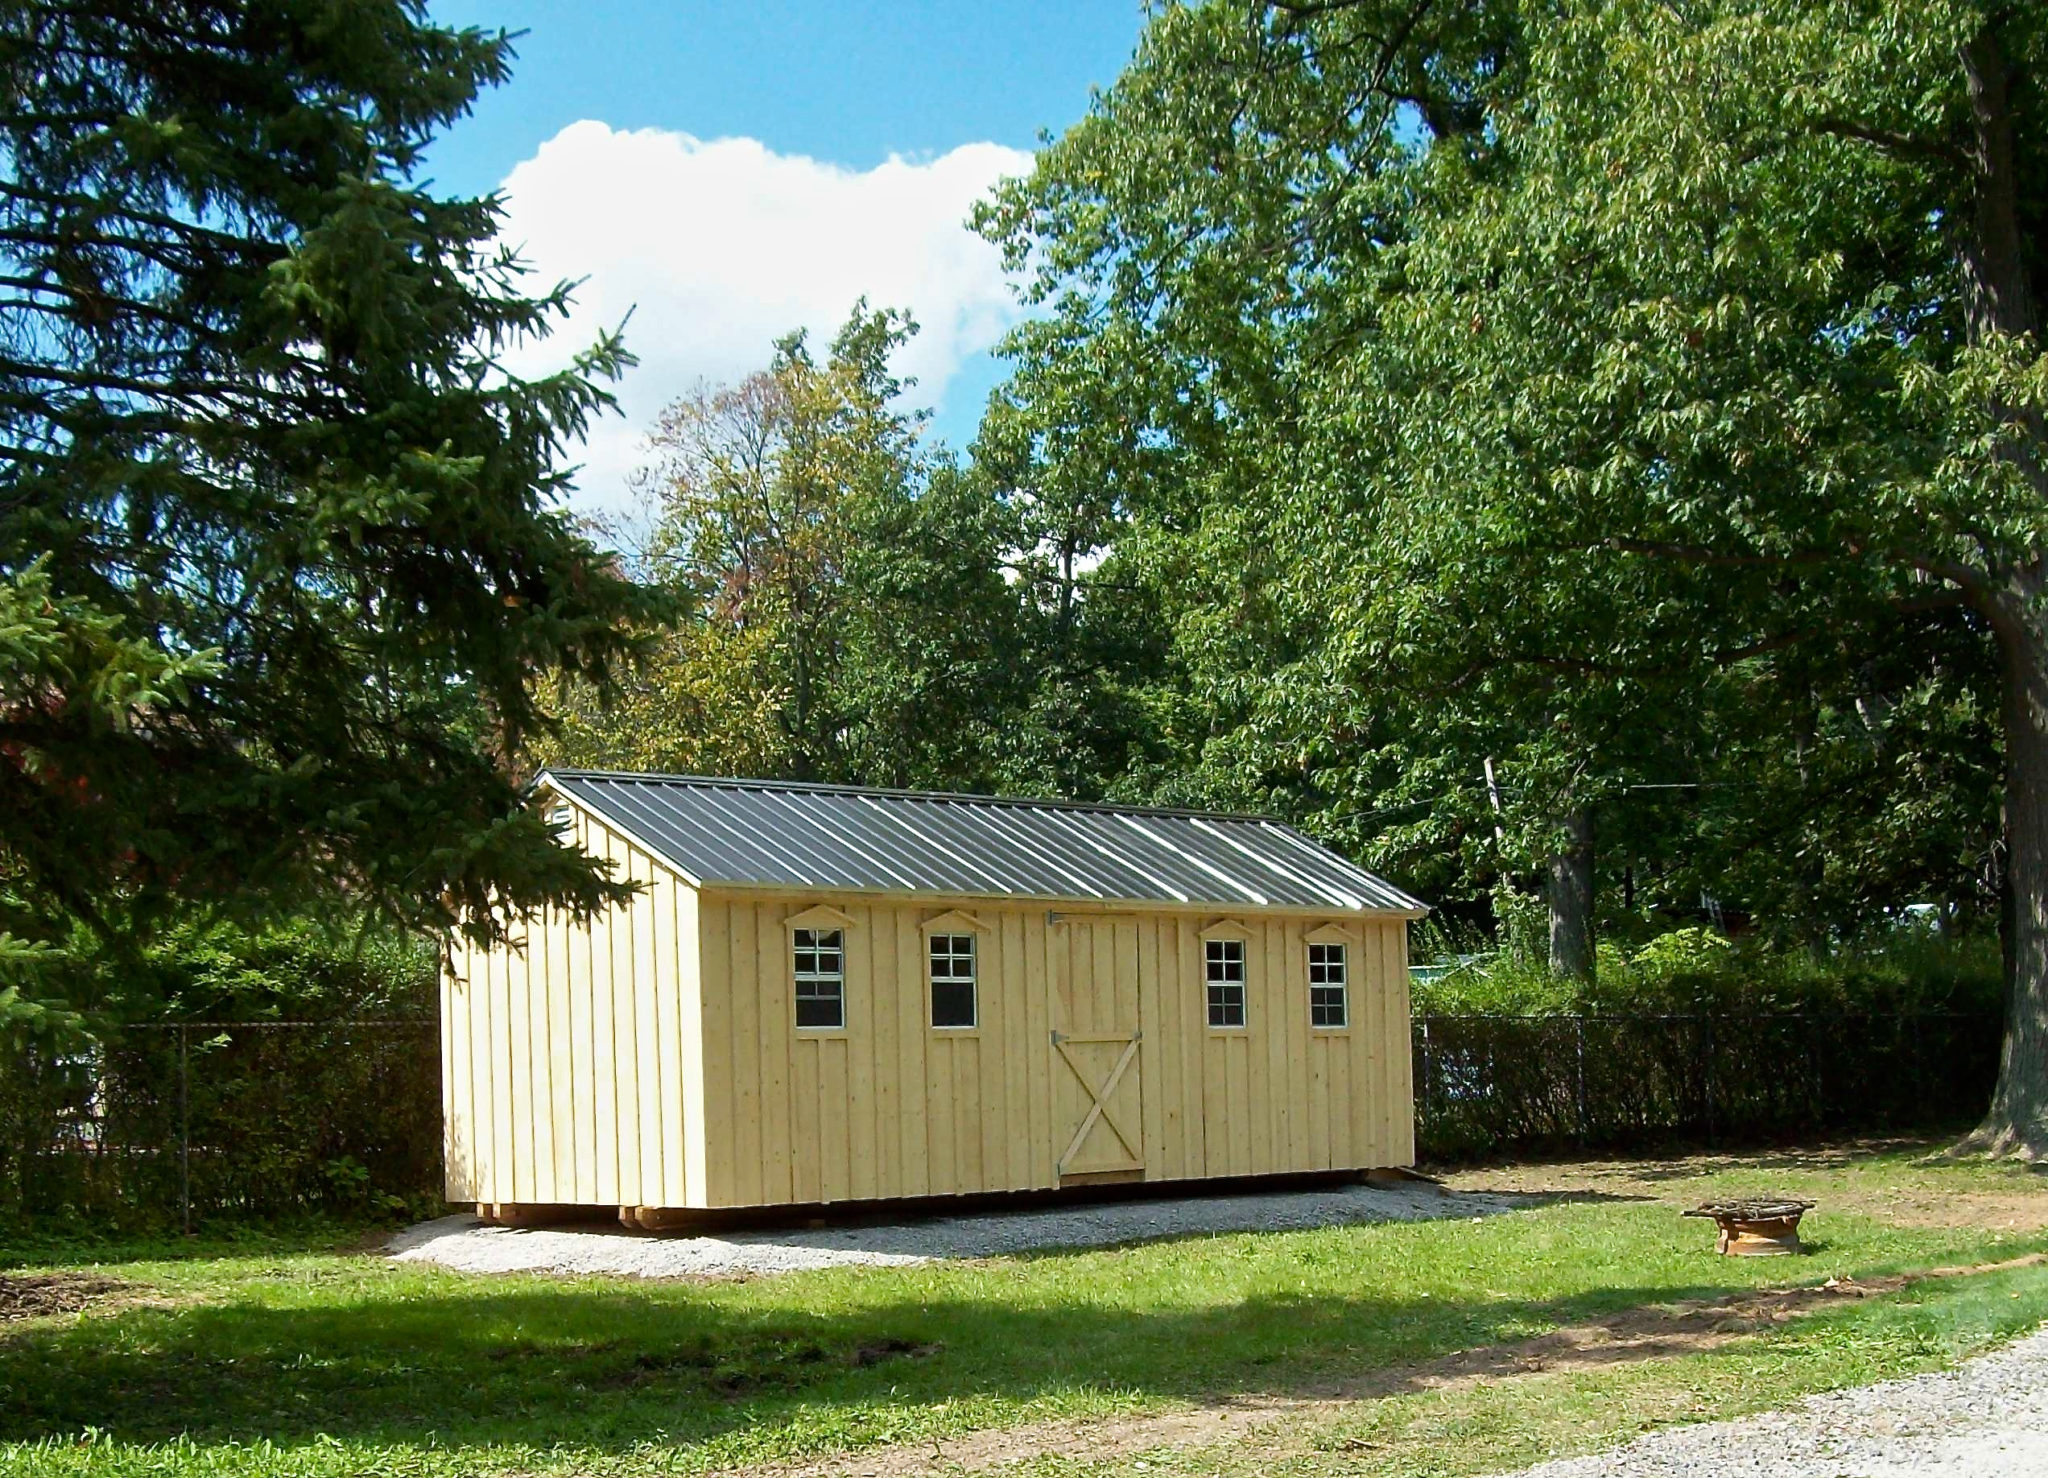 Amish Shed With Green Roof and a double door